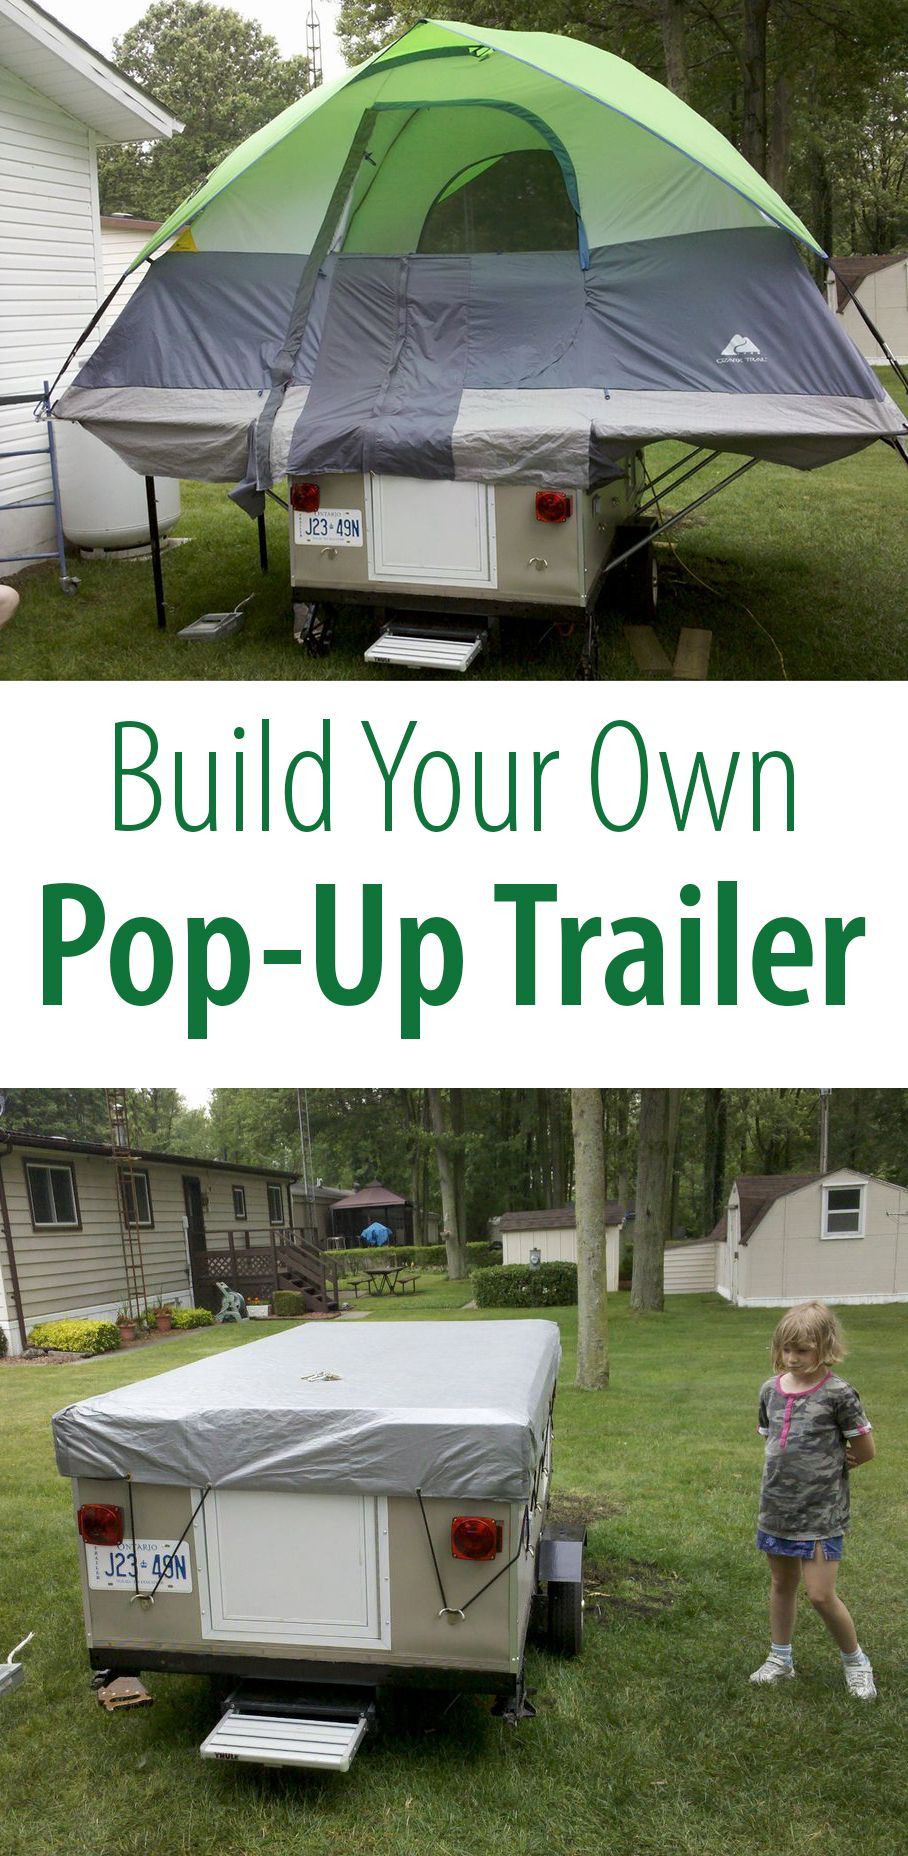 build your own pop up trailer camping pop up trailer. Black Bedroom Furniture Sets. Home Design Ideas